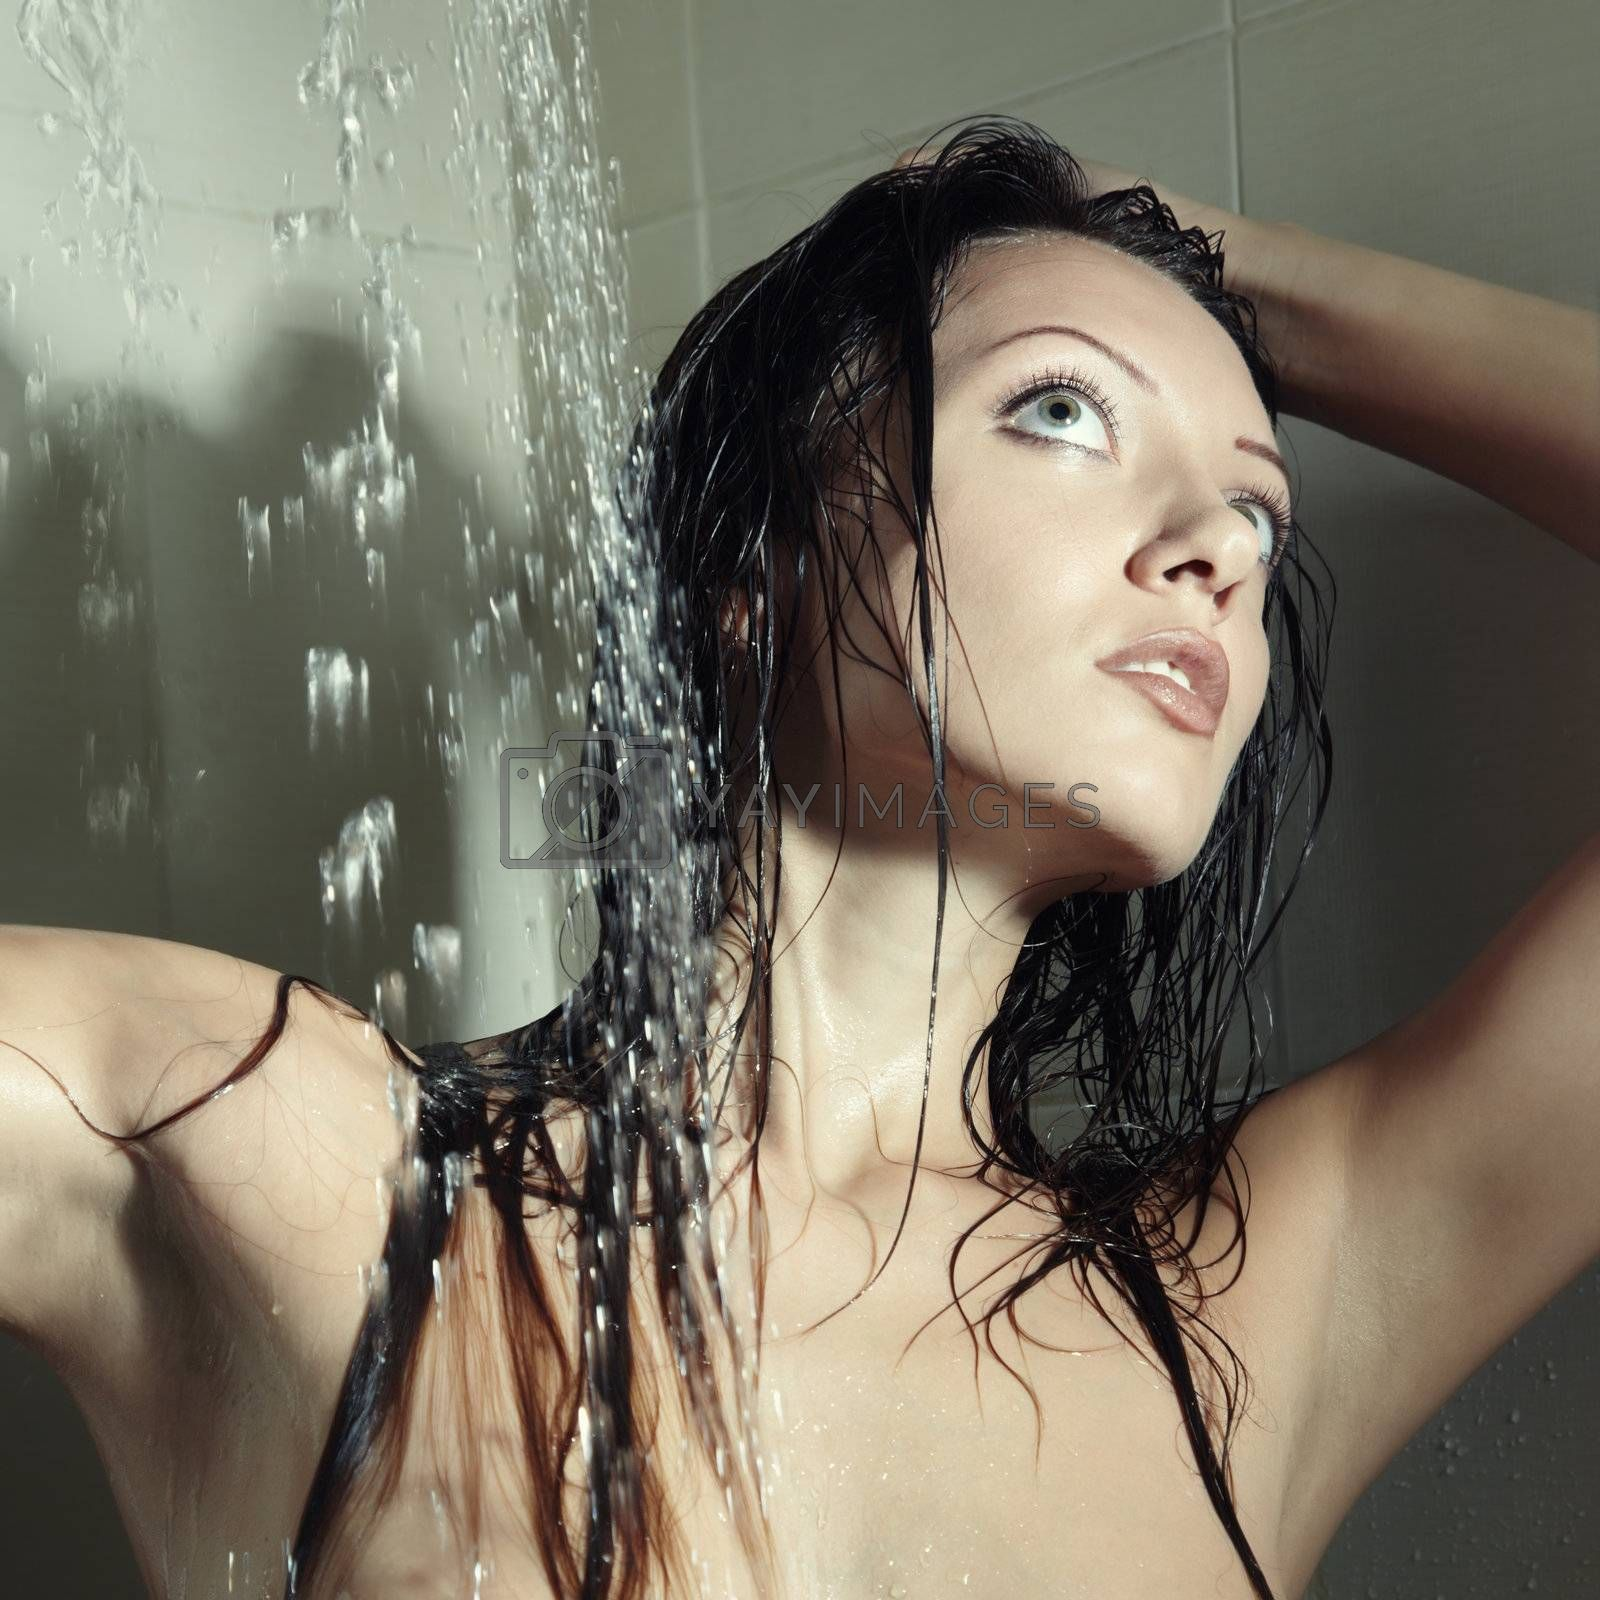 Wet attractive young lady in the bathroom under the water from shower